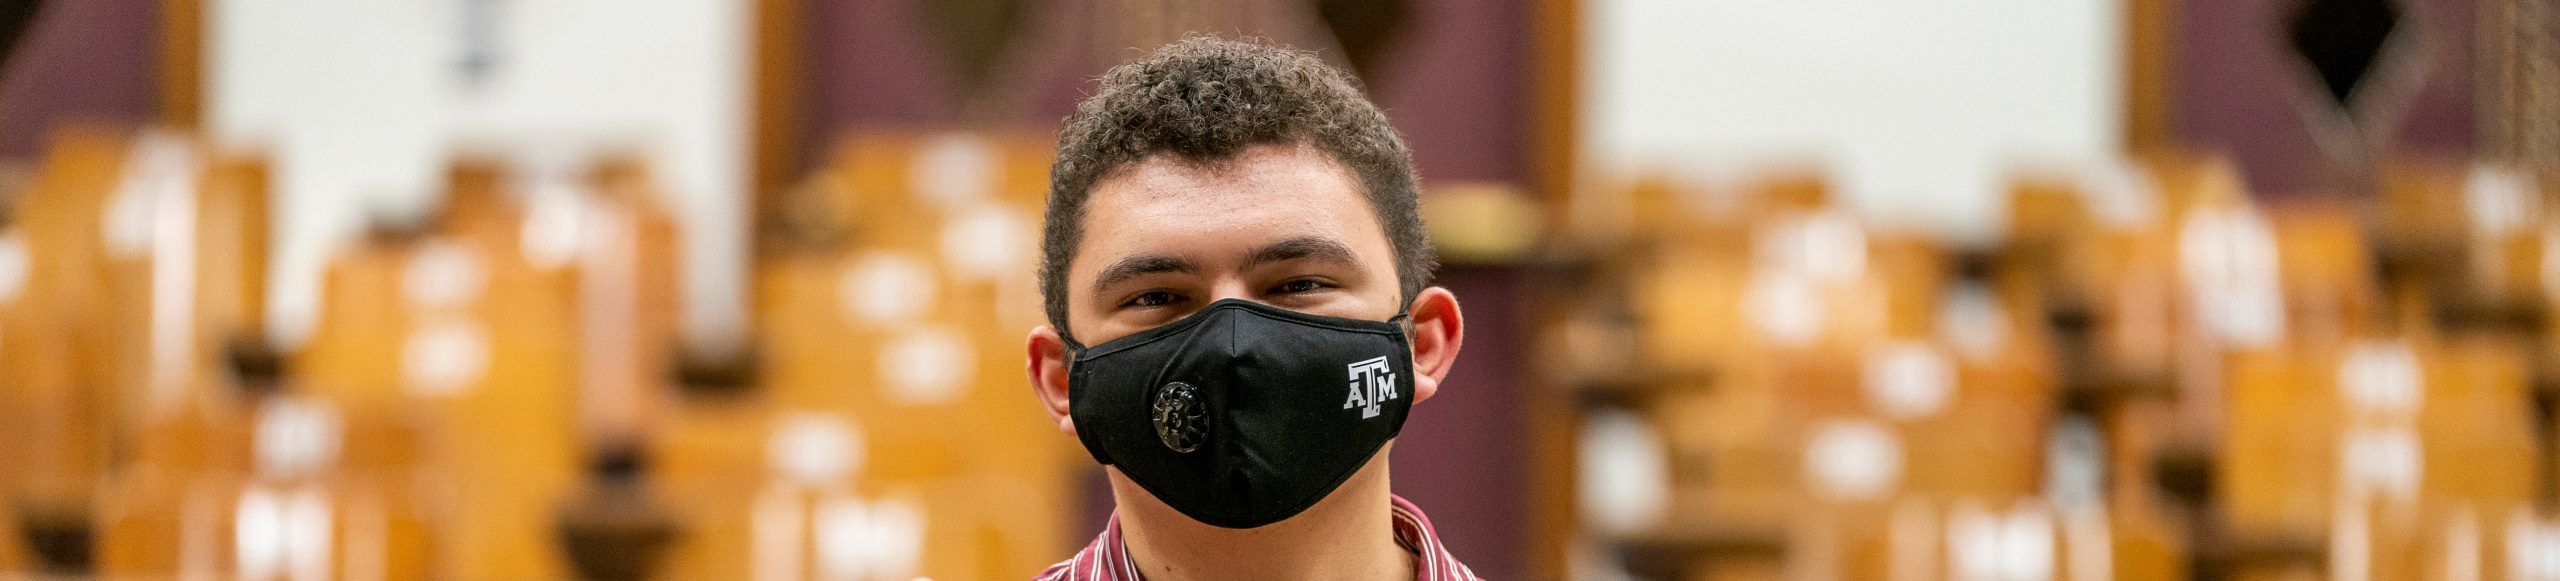 student facing the camera wearing a mask